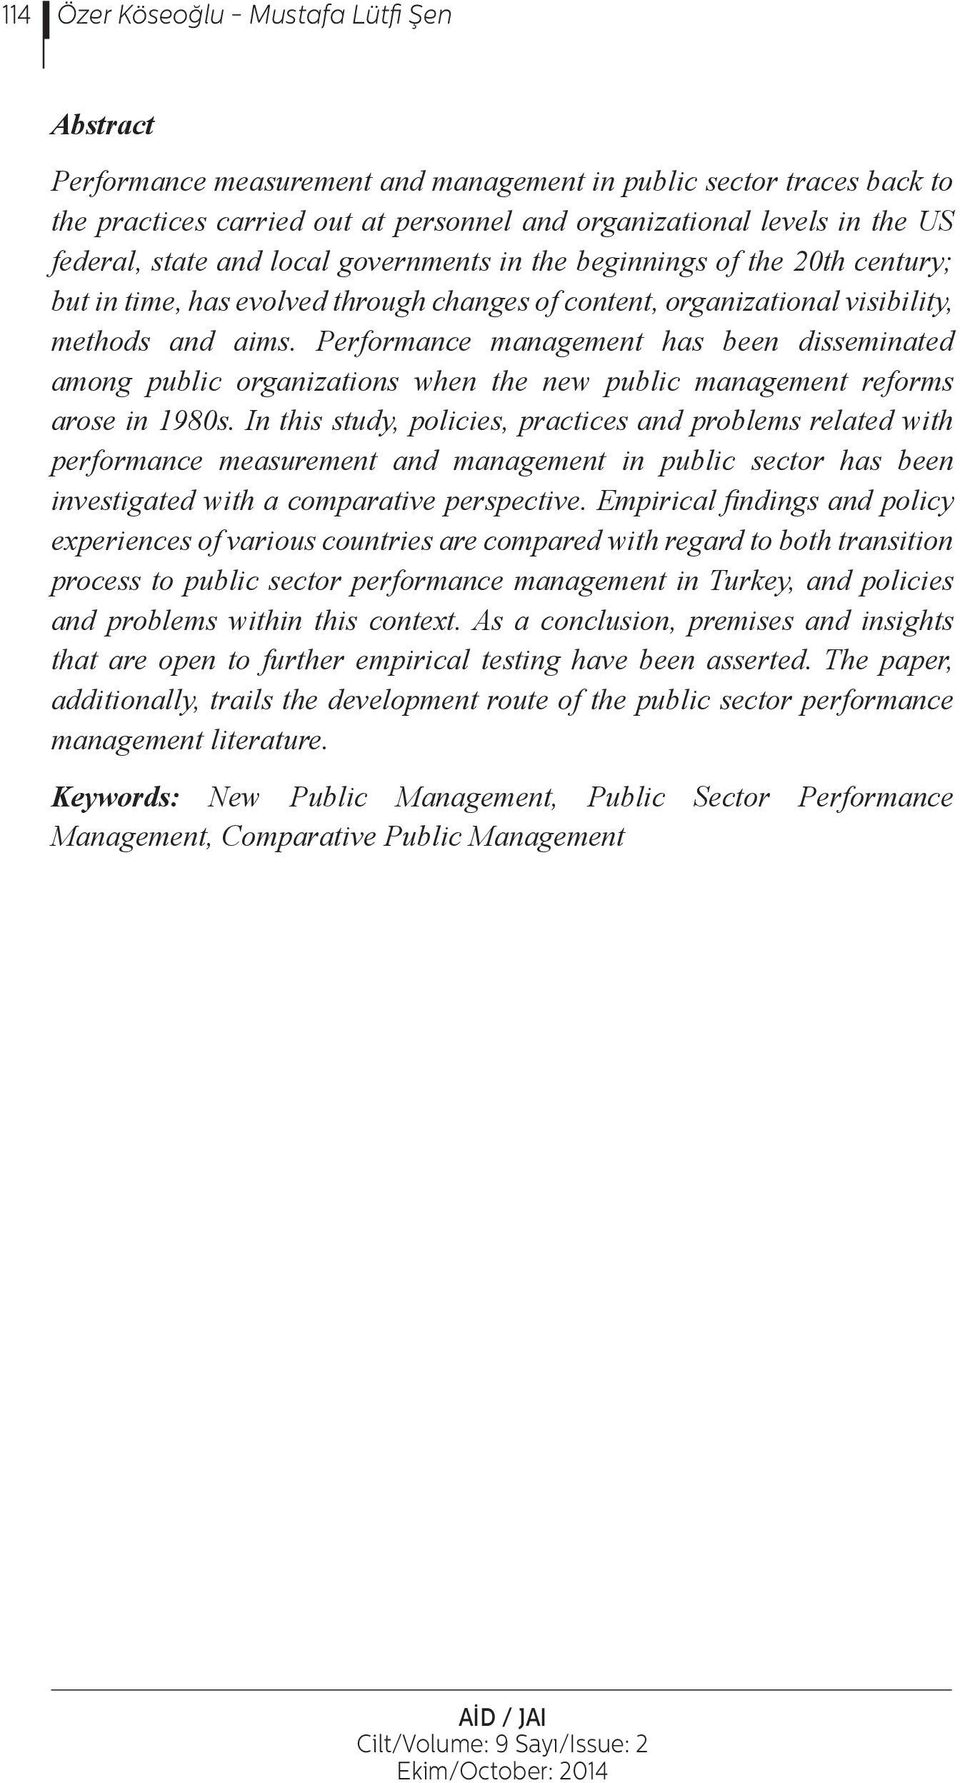 Performance management has been disseminated among public organizations when the new public management reforms arose in 1980s.